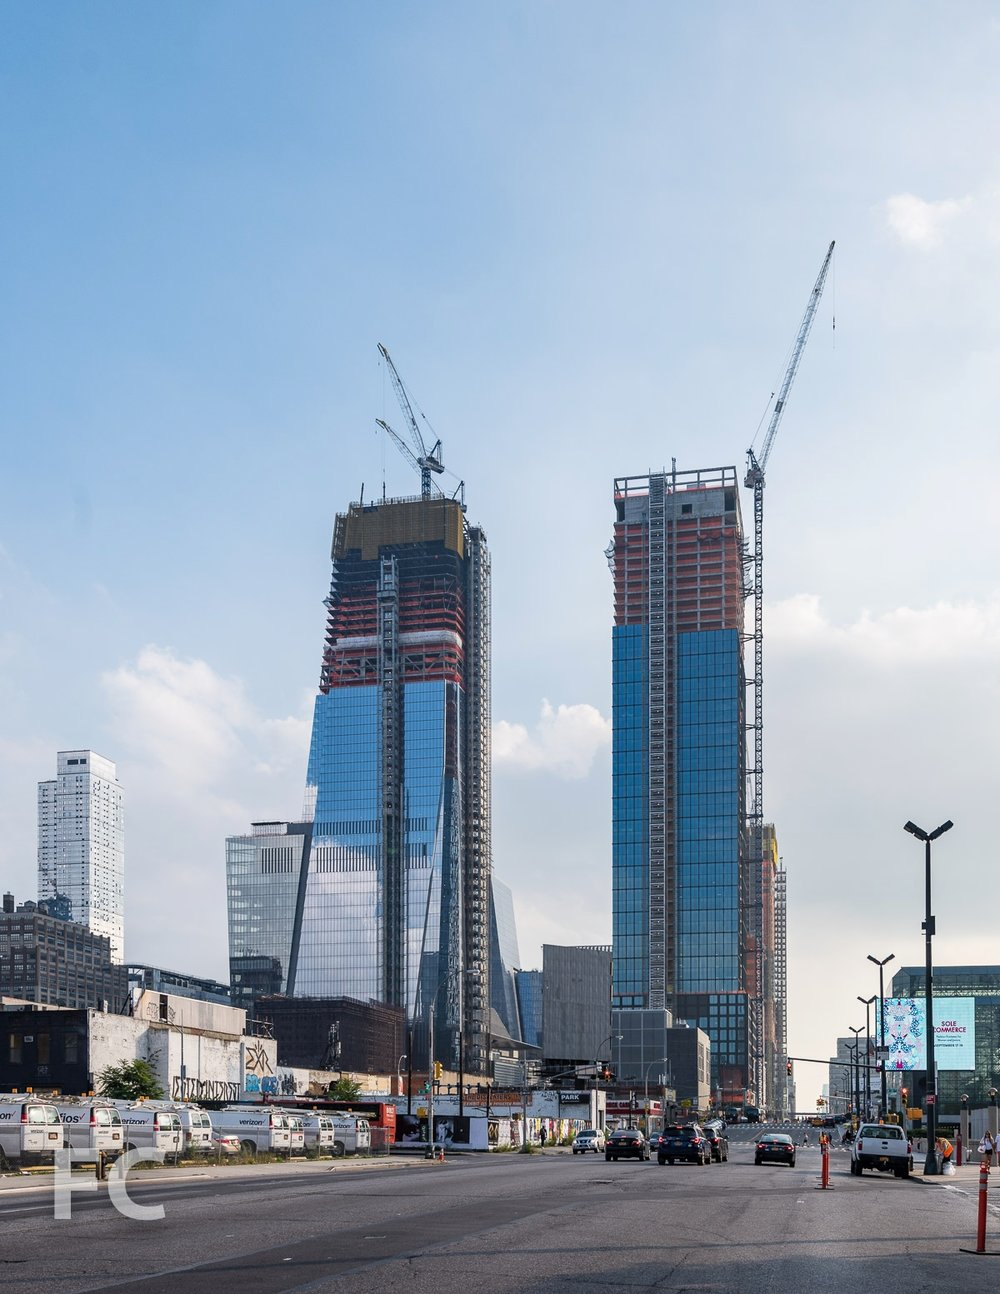 Looking south on 11th Avenue towards 30 Hudson Yards (left) and 55 Hudson Yards (right).